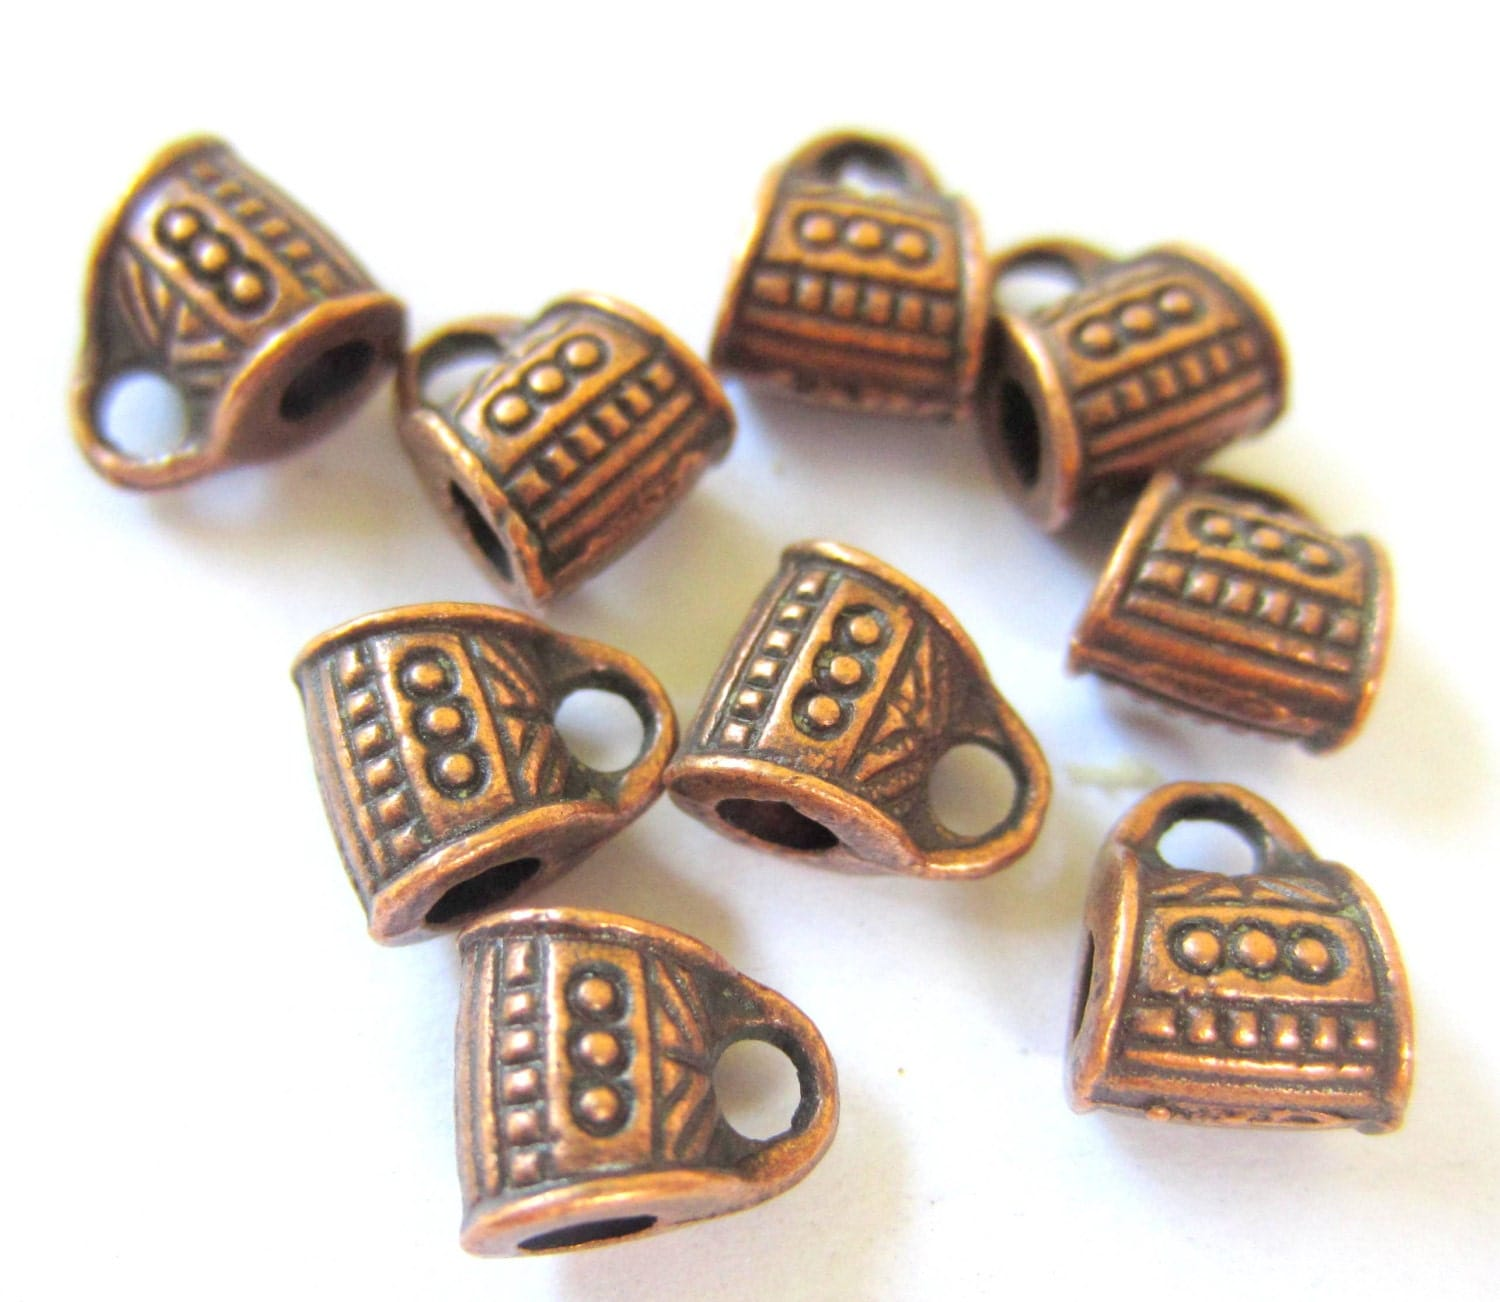 24 copper charm hangers jewelry supplies pendant